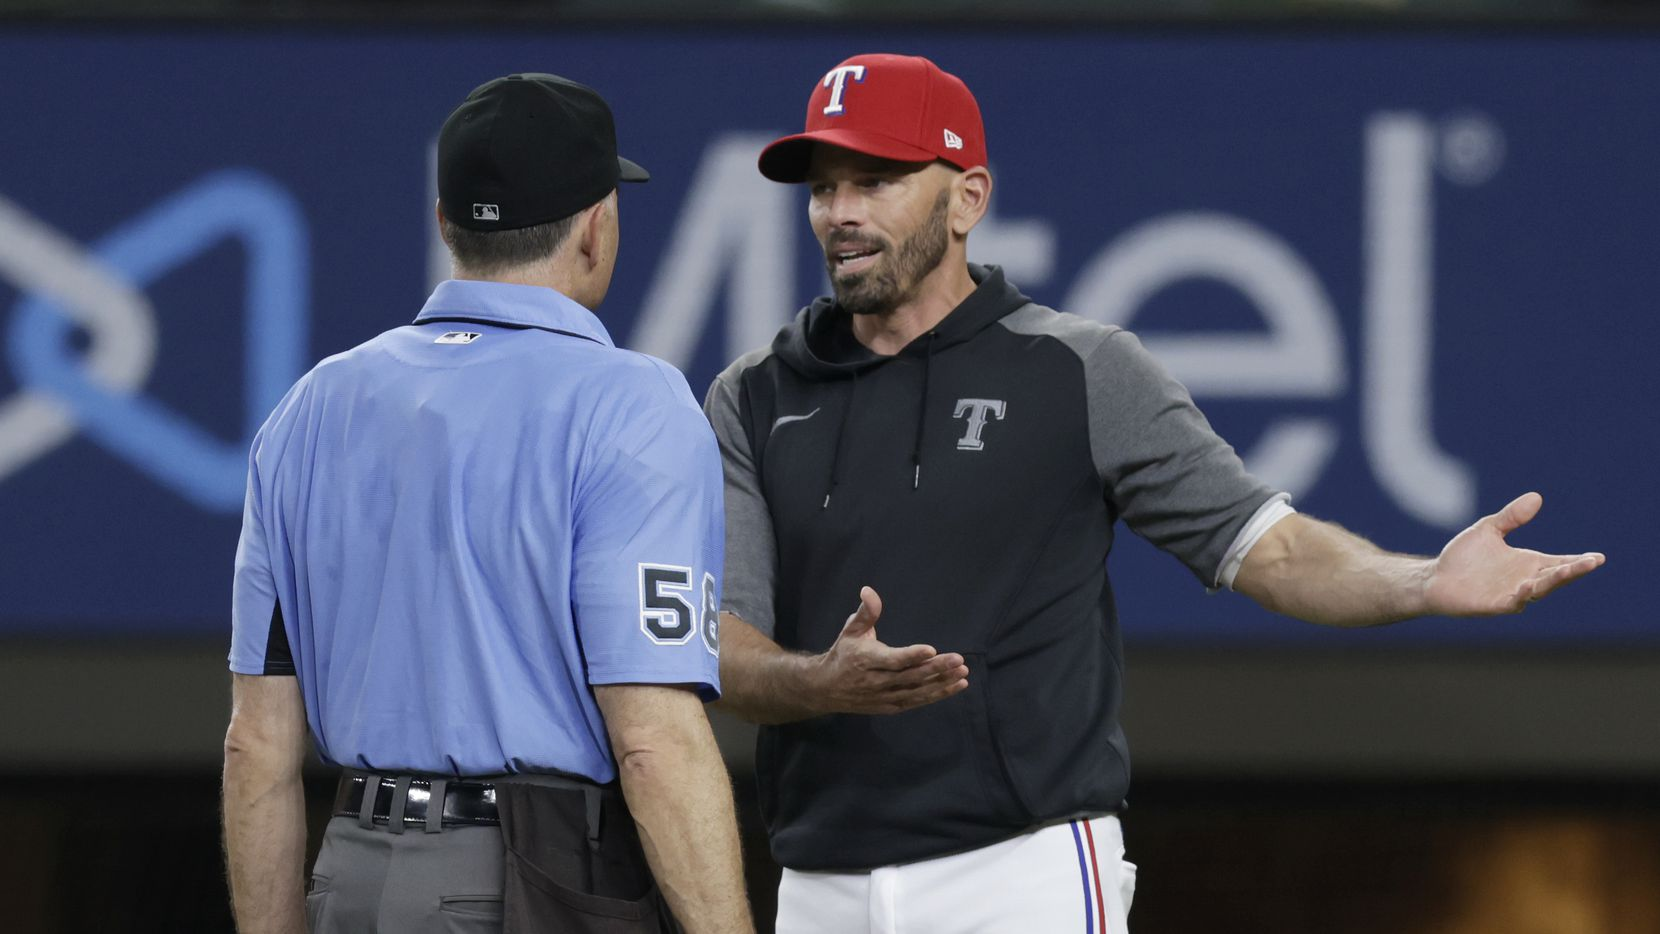 Texas Rangers manager Chris Woodward argues a call with home plate umpire Dan Iassogna during the sixth inning of a baseball game against the Oakland Athletics in Arlington, Monday, June 21, 2021.